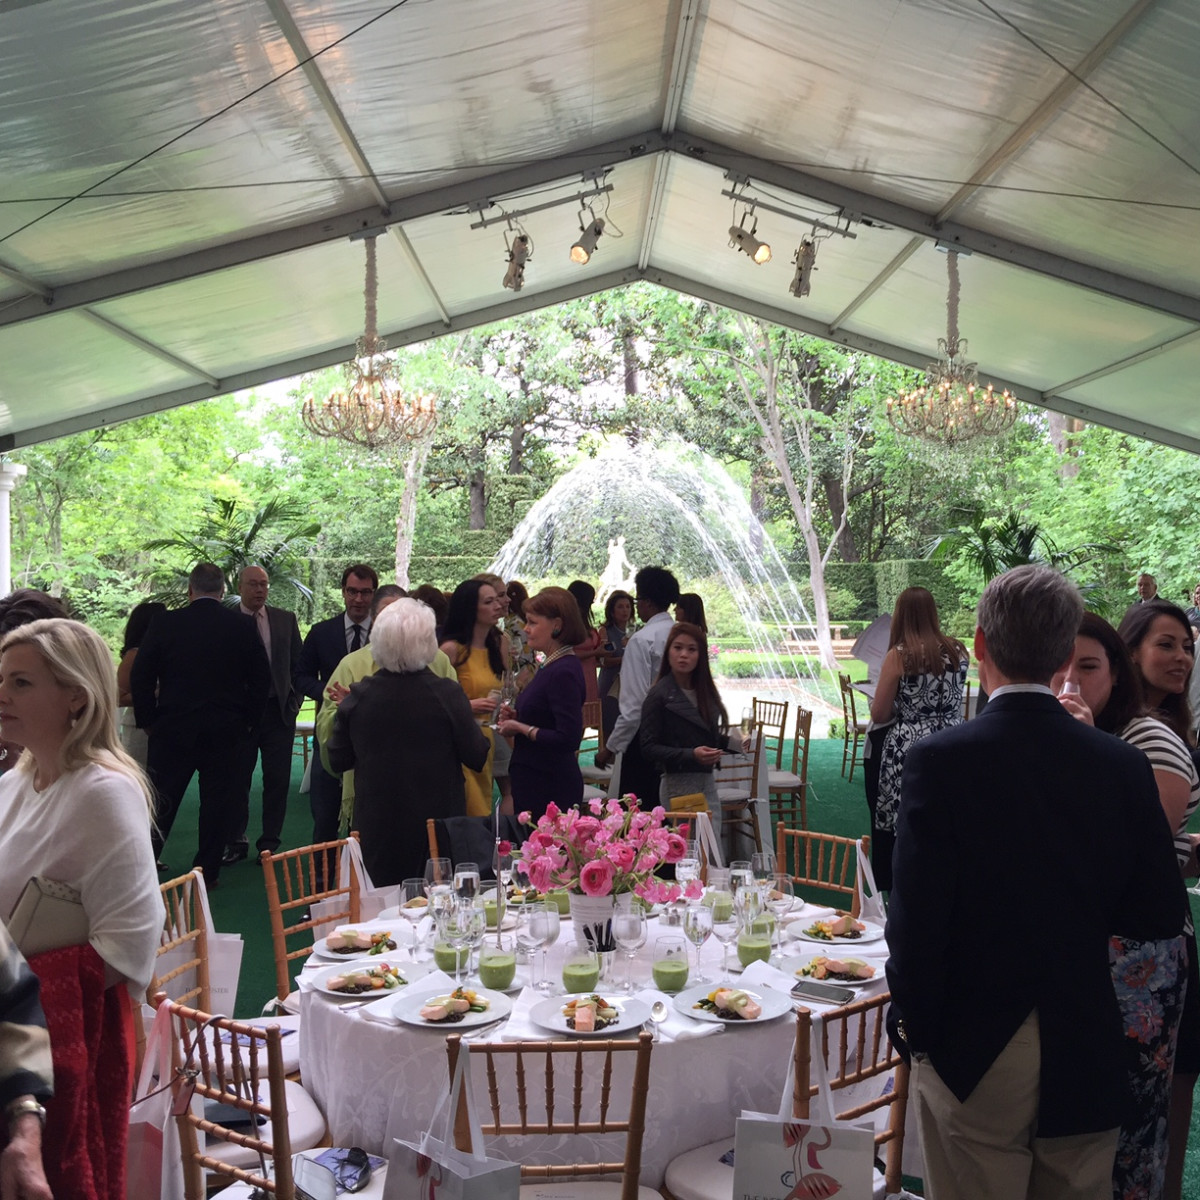 Bayou Bend Luncheon,  setting